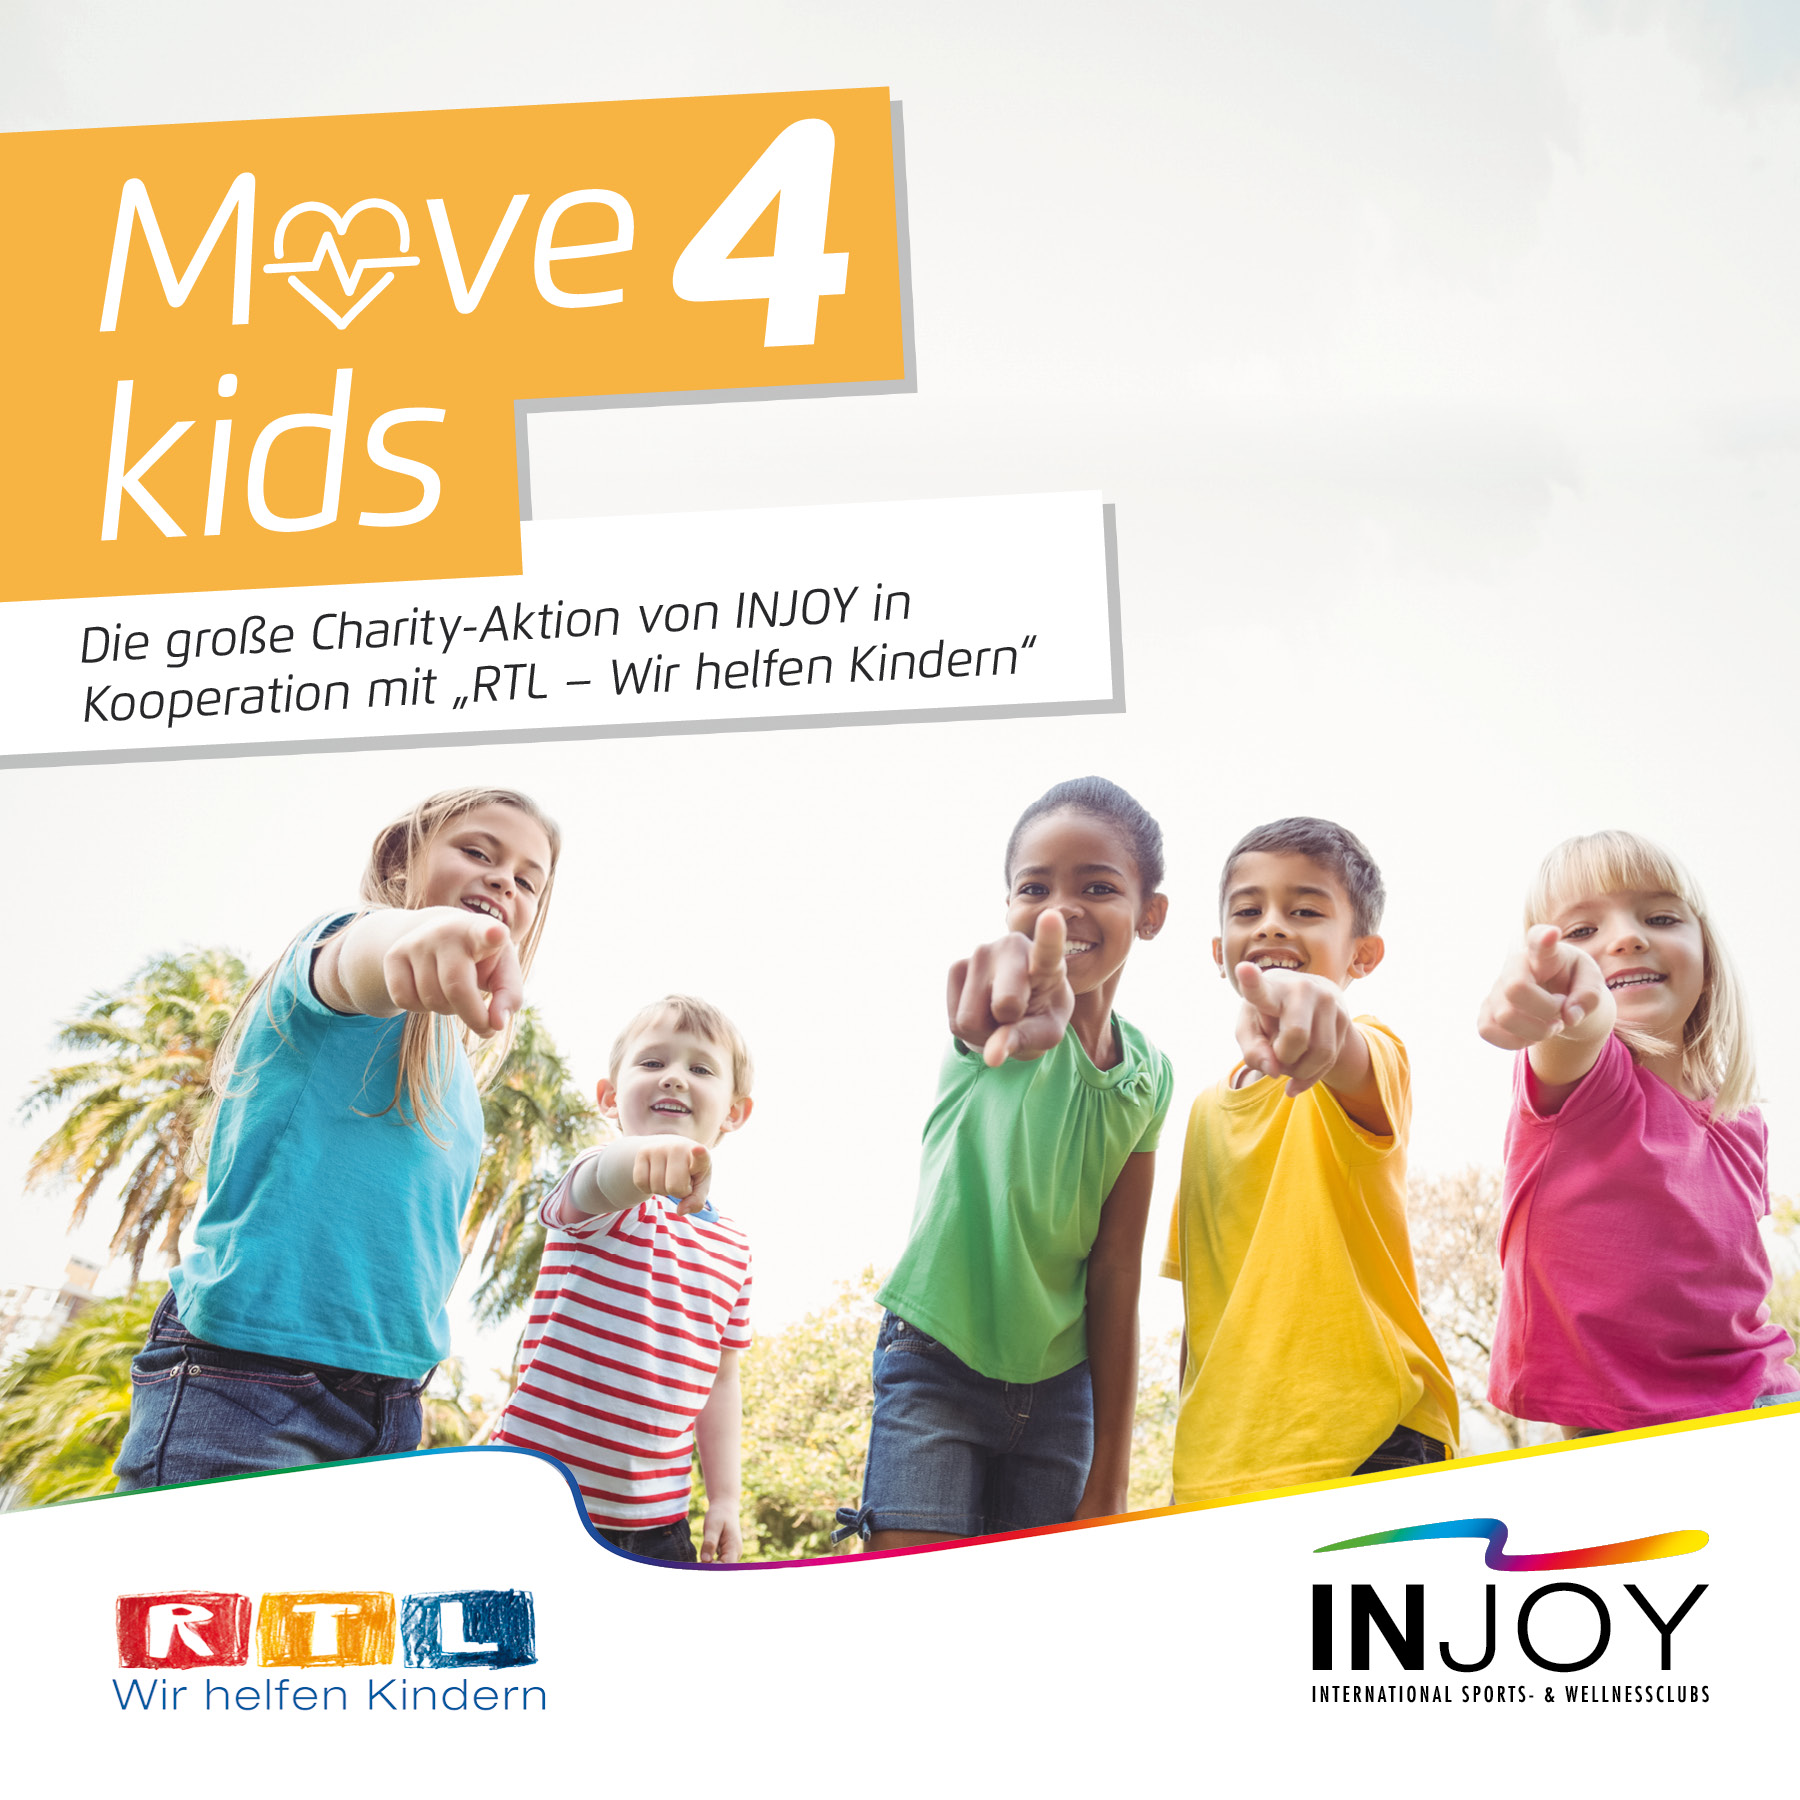 move4kids_injoy1